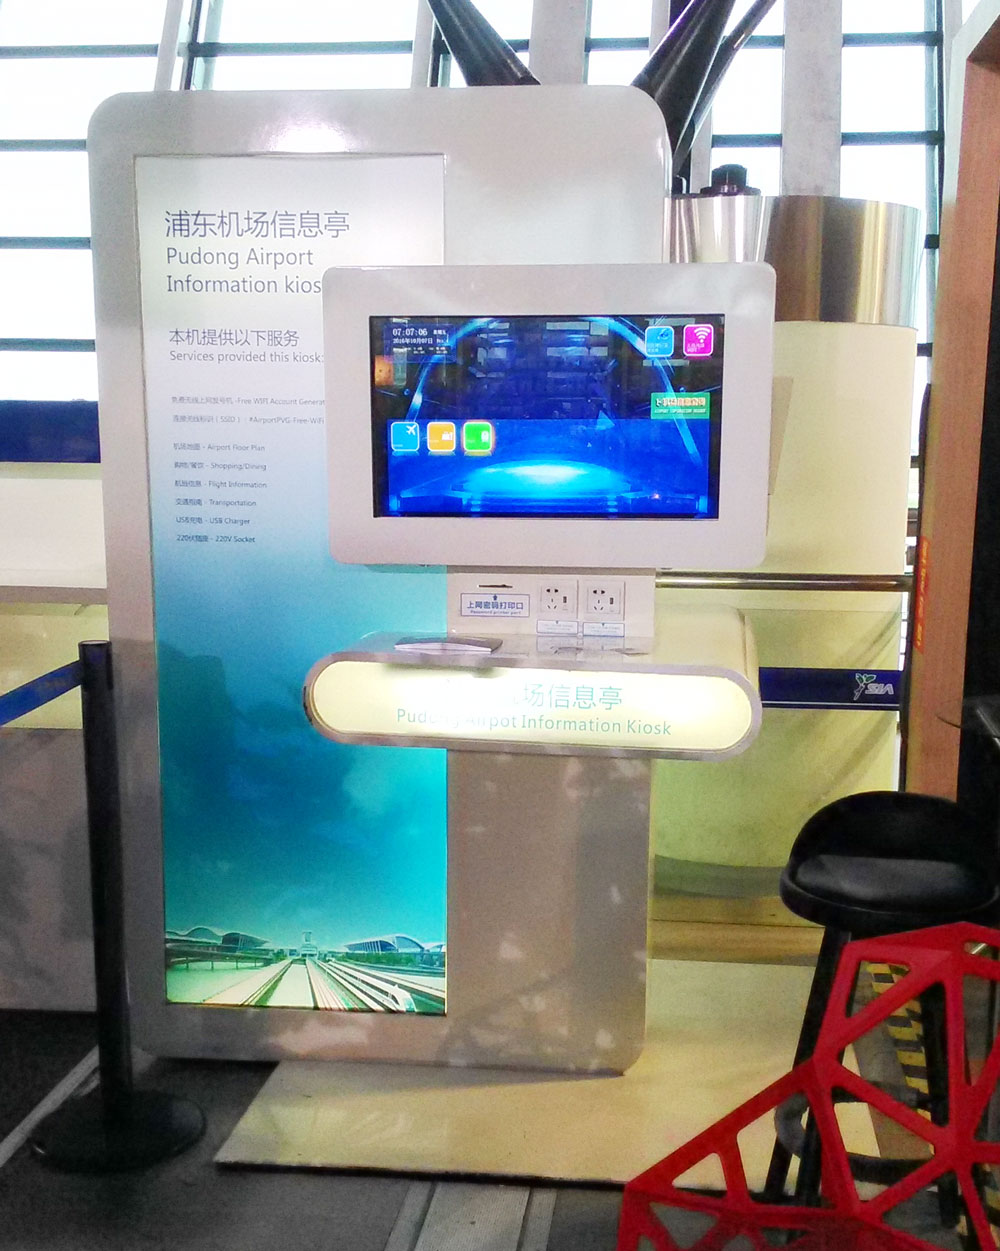 Pudong Airport Information kiosk